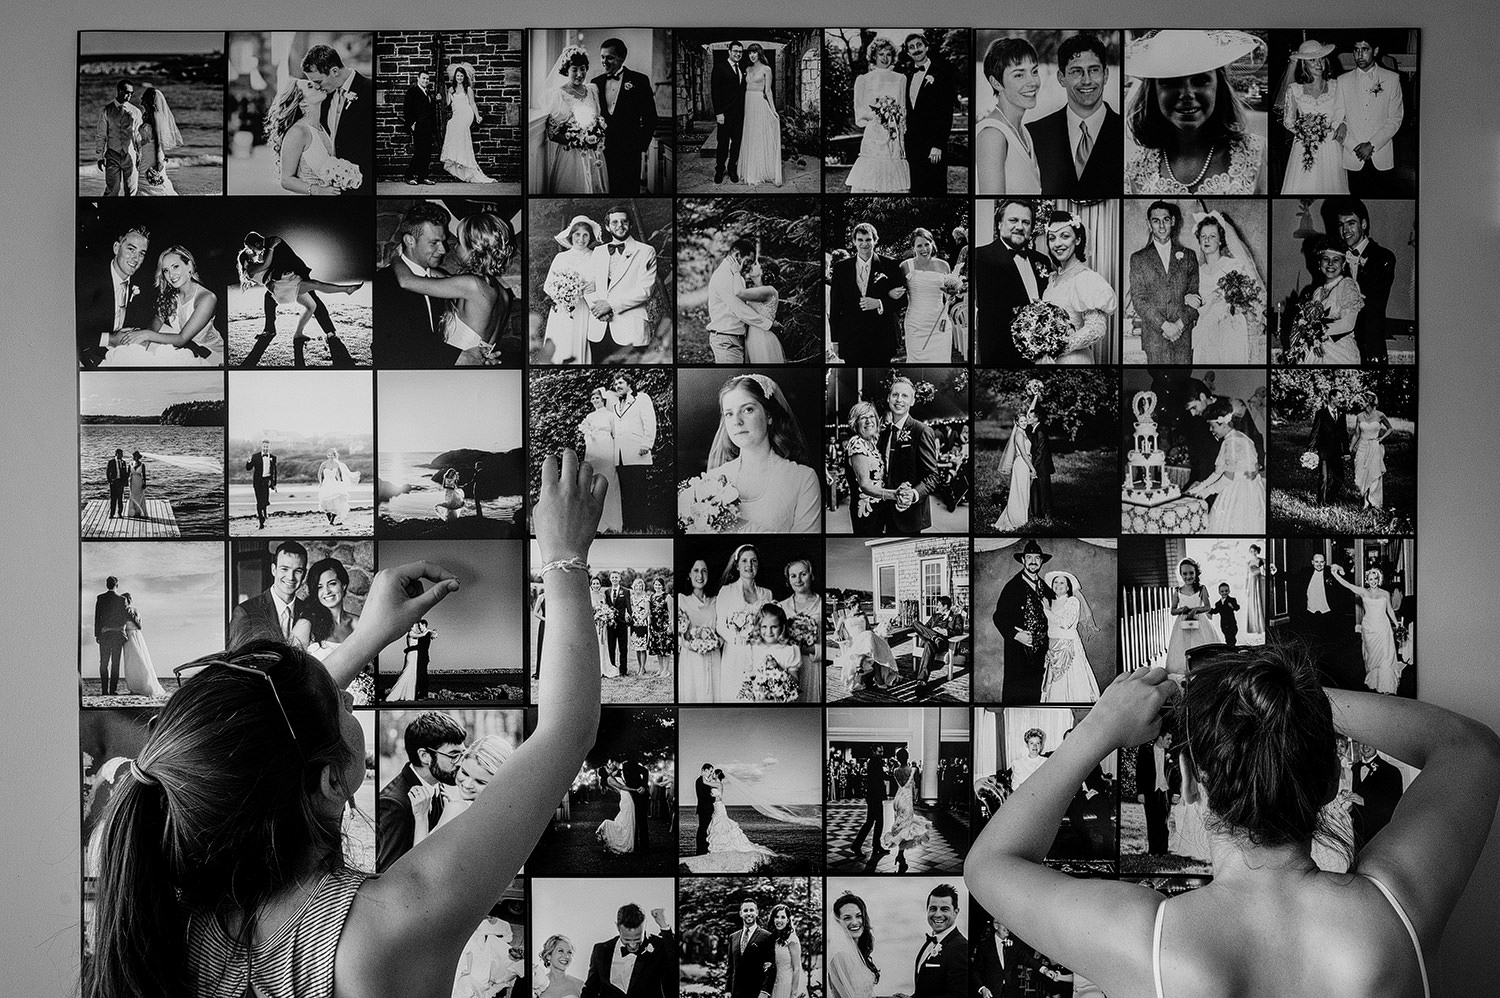 Cooked Photography ingonish beach keltic lodge wedding nova scotia cape breton halifax wedding photographers jeff cooke jenn nauss Keltic Lodge 284